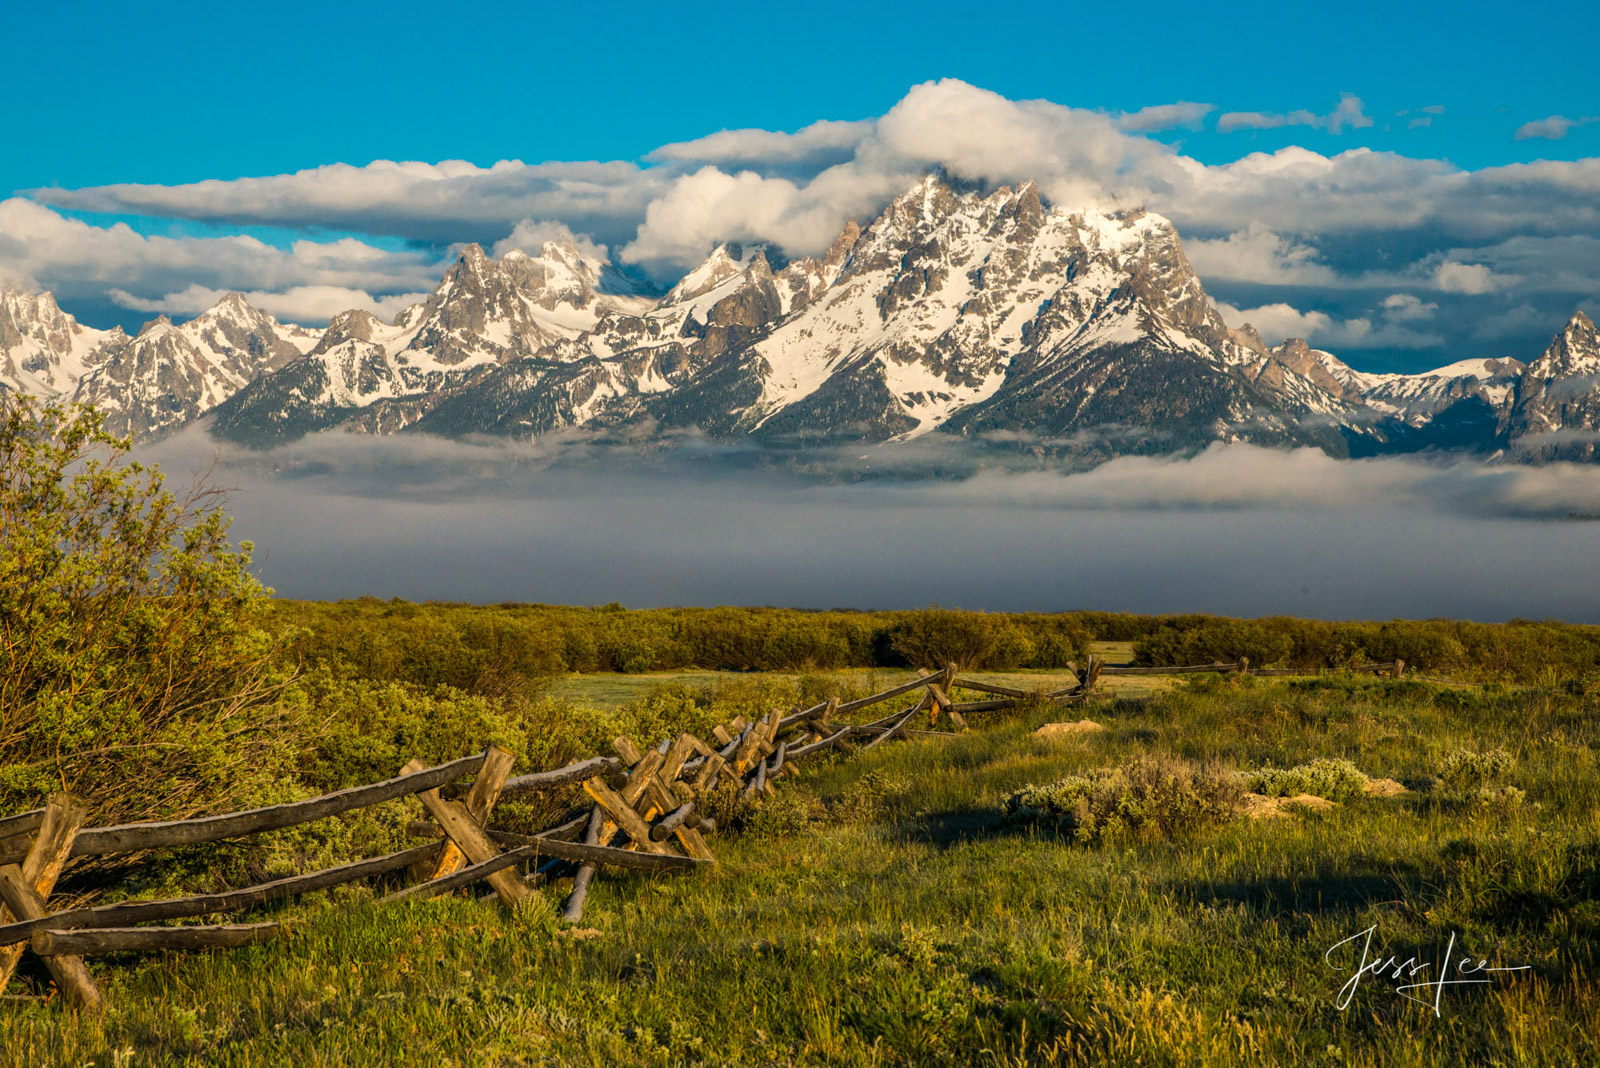 photo of Grand Tetons in Wyoming, National Park photography, landscape photos, mountain scene, cross buck fence, wildlife, snow, trees, summer, green pasture, ranch, museum quality, fine art, print, j, photo